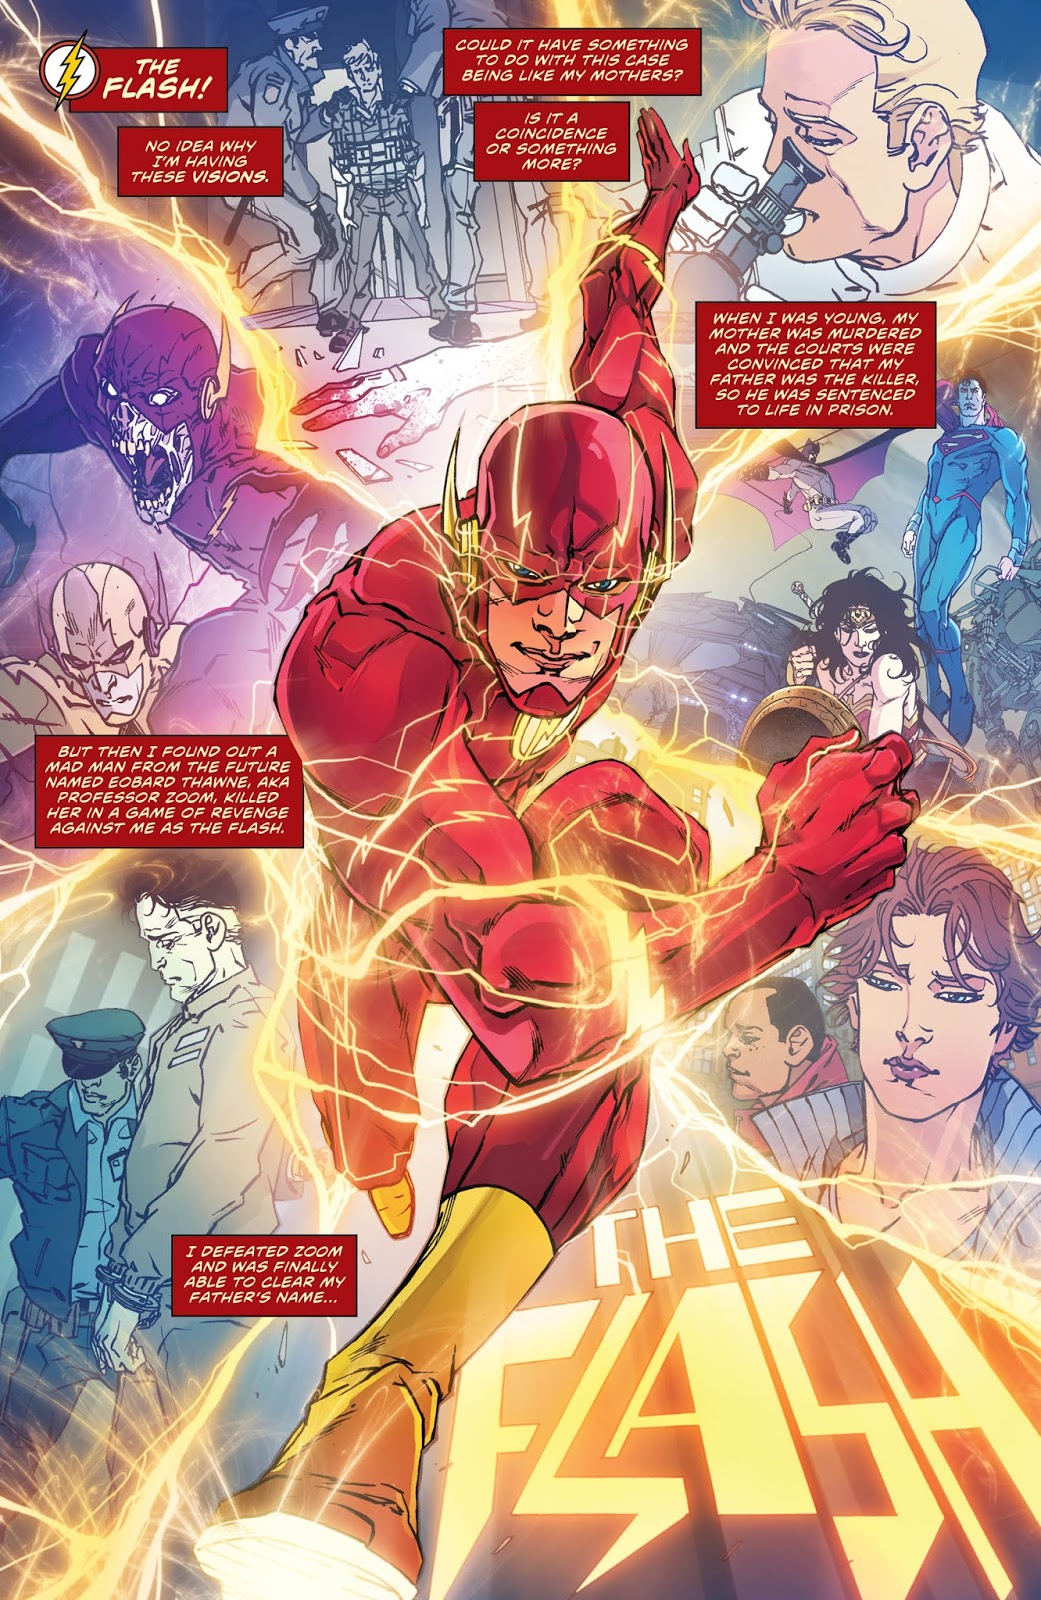 THE FLASH VOL. 1: LIGHTNING STRIKES TWICE